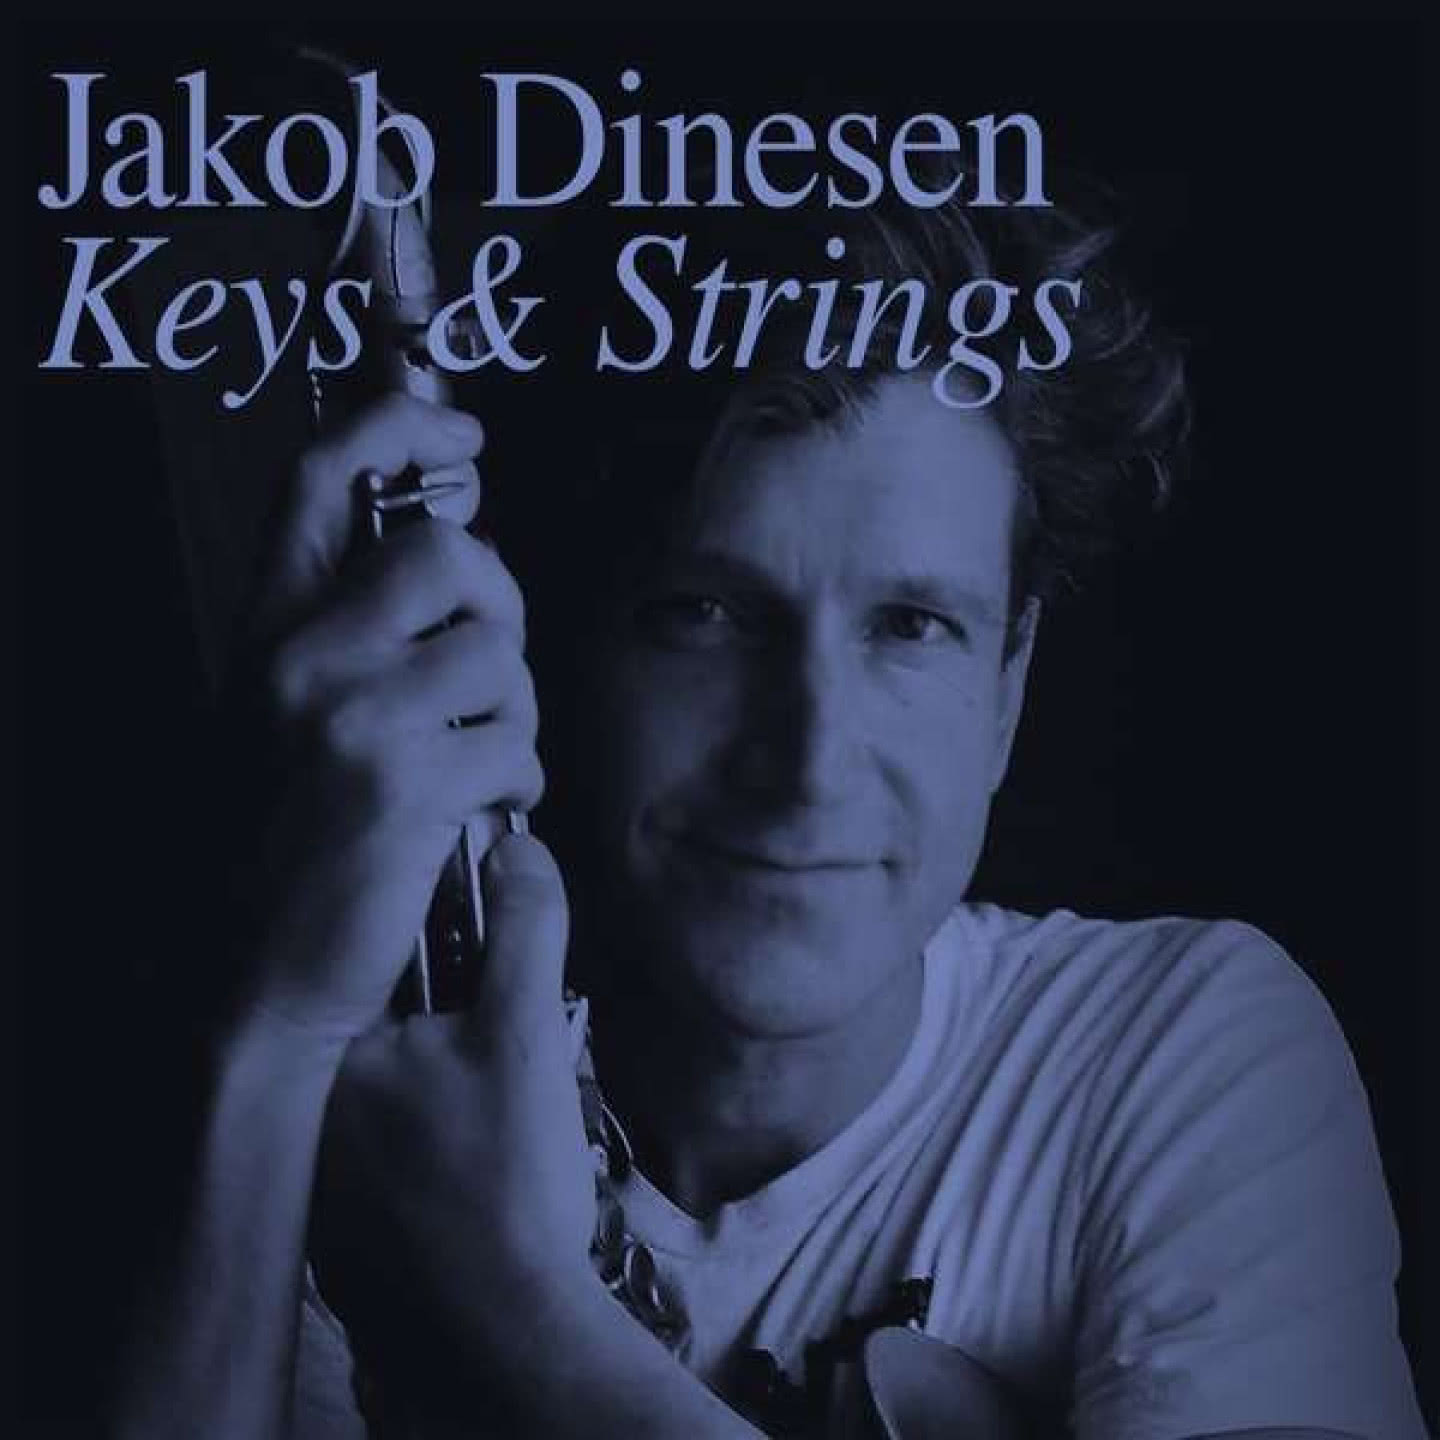 Keys & Strings